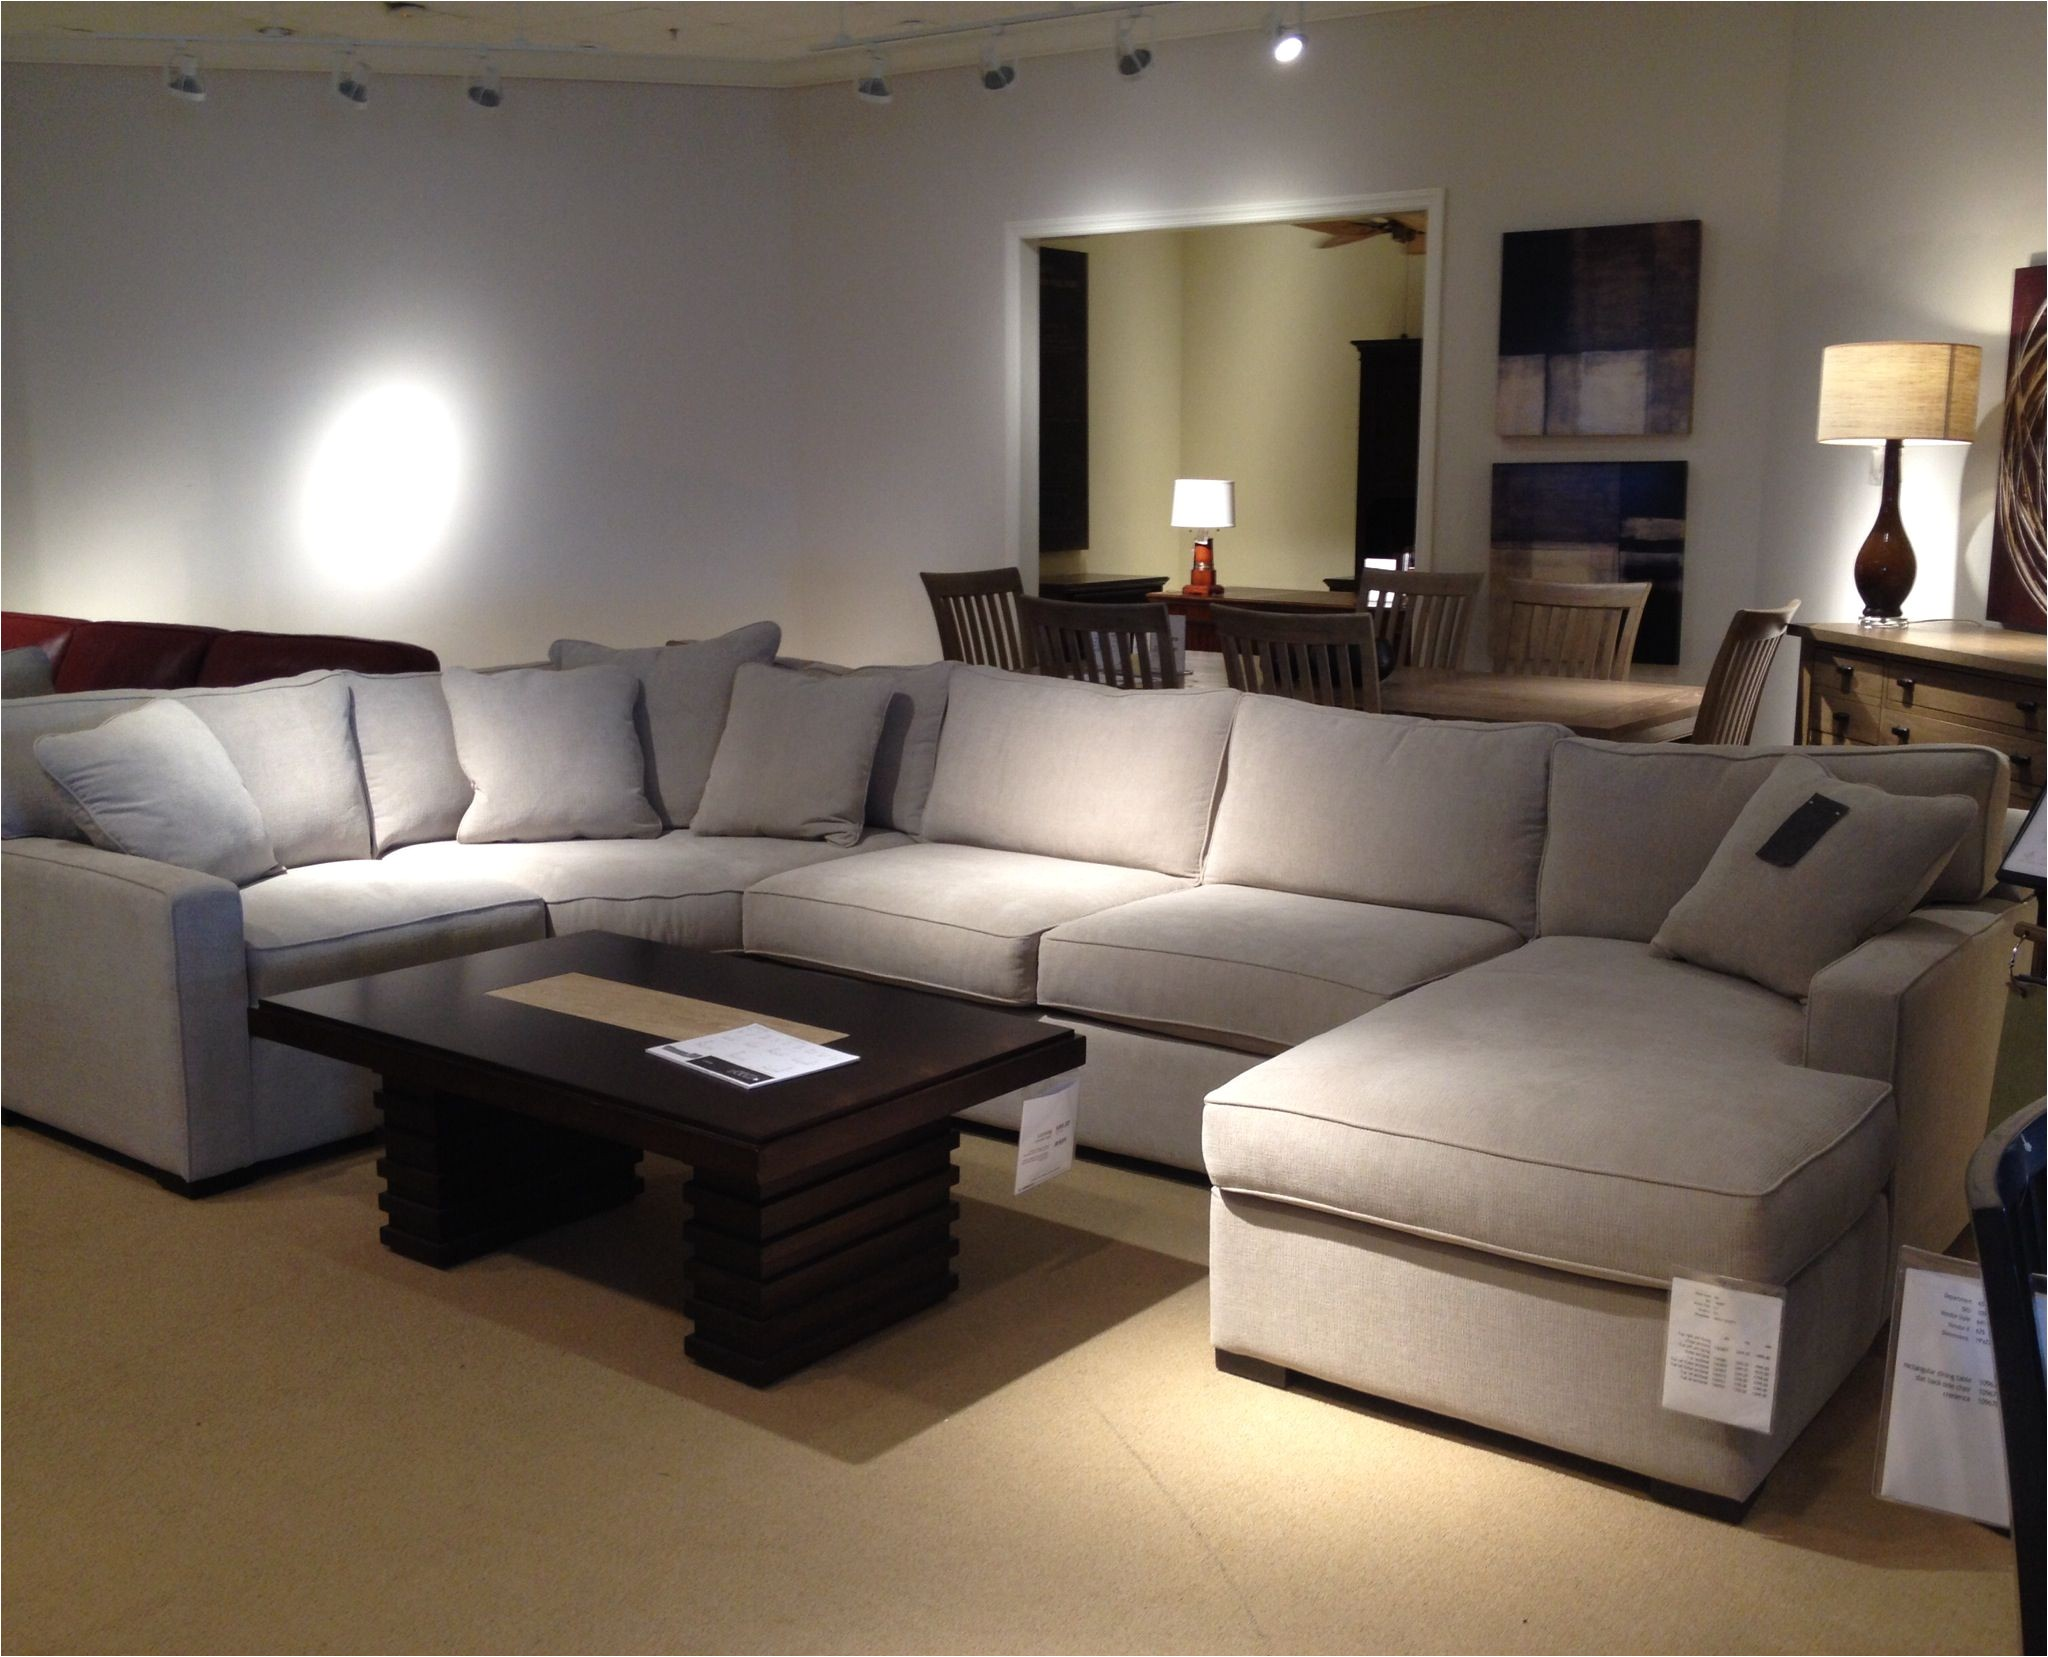 Radley 4 Piece Sectional Macys Radley 4 Piece Sectional sofa From Macys What 39 S Great is